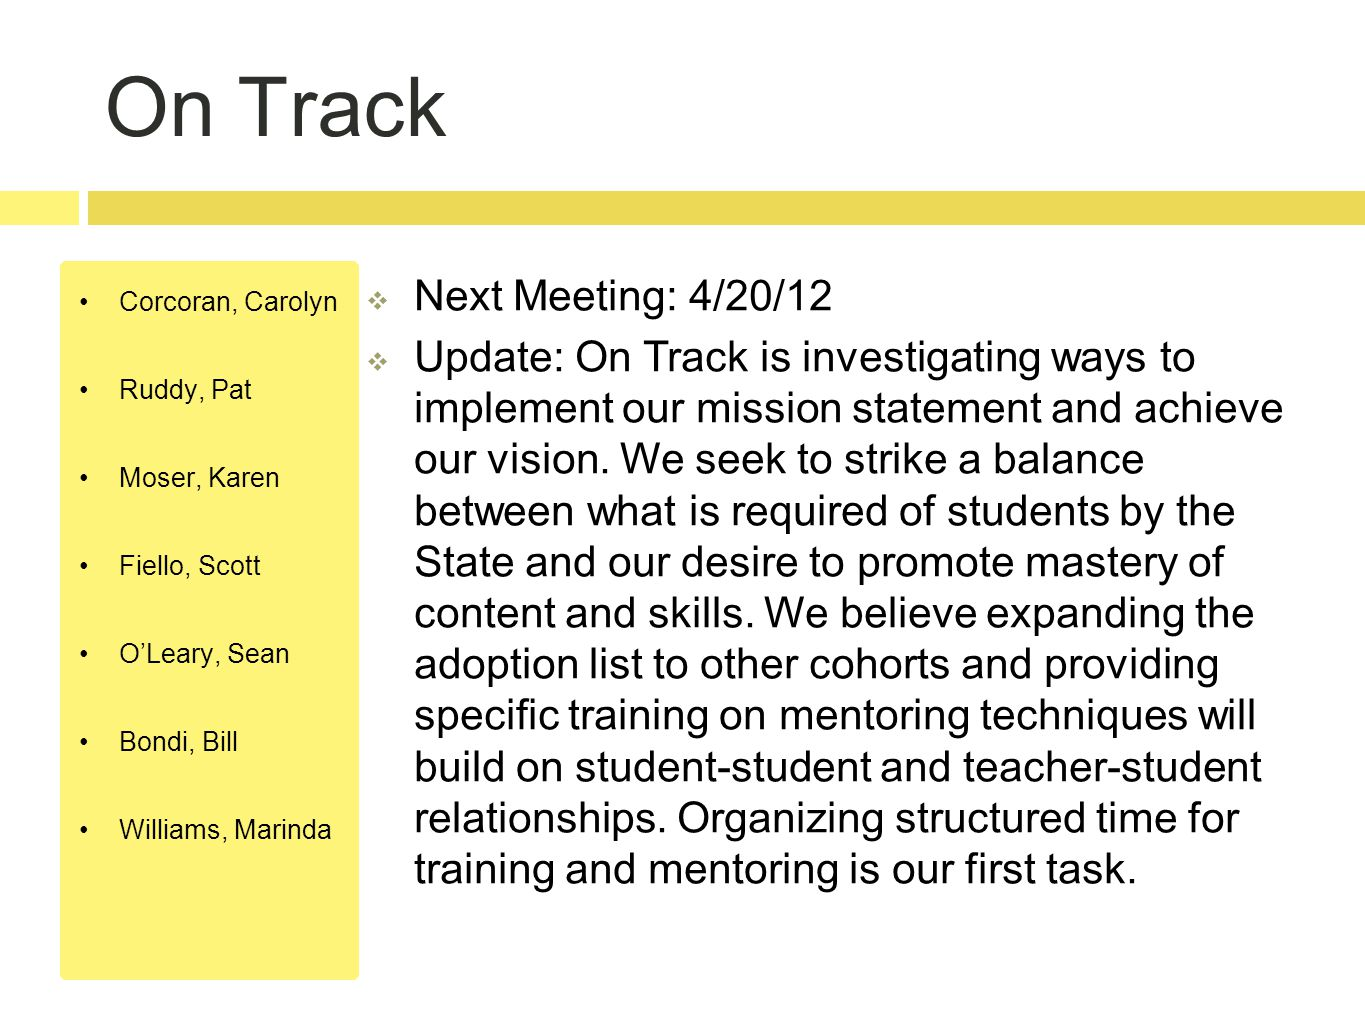 On Track Corcoran, Carolyn Ruddy, Pat Moser, Karen Fiello, Scott O'Leary, Sean Bondi, Bill Williams, Marinda  Next Meeting: 4/20/12  Update: On Track is investigating ways to implement our mission statement and achieve our vision.